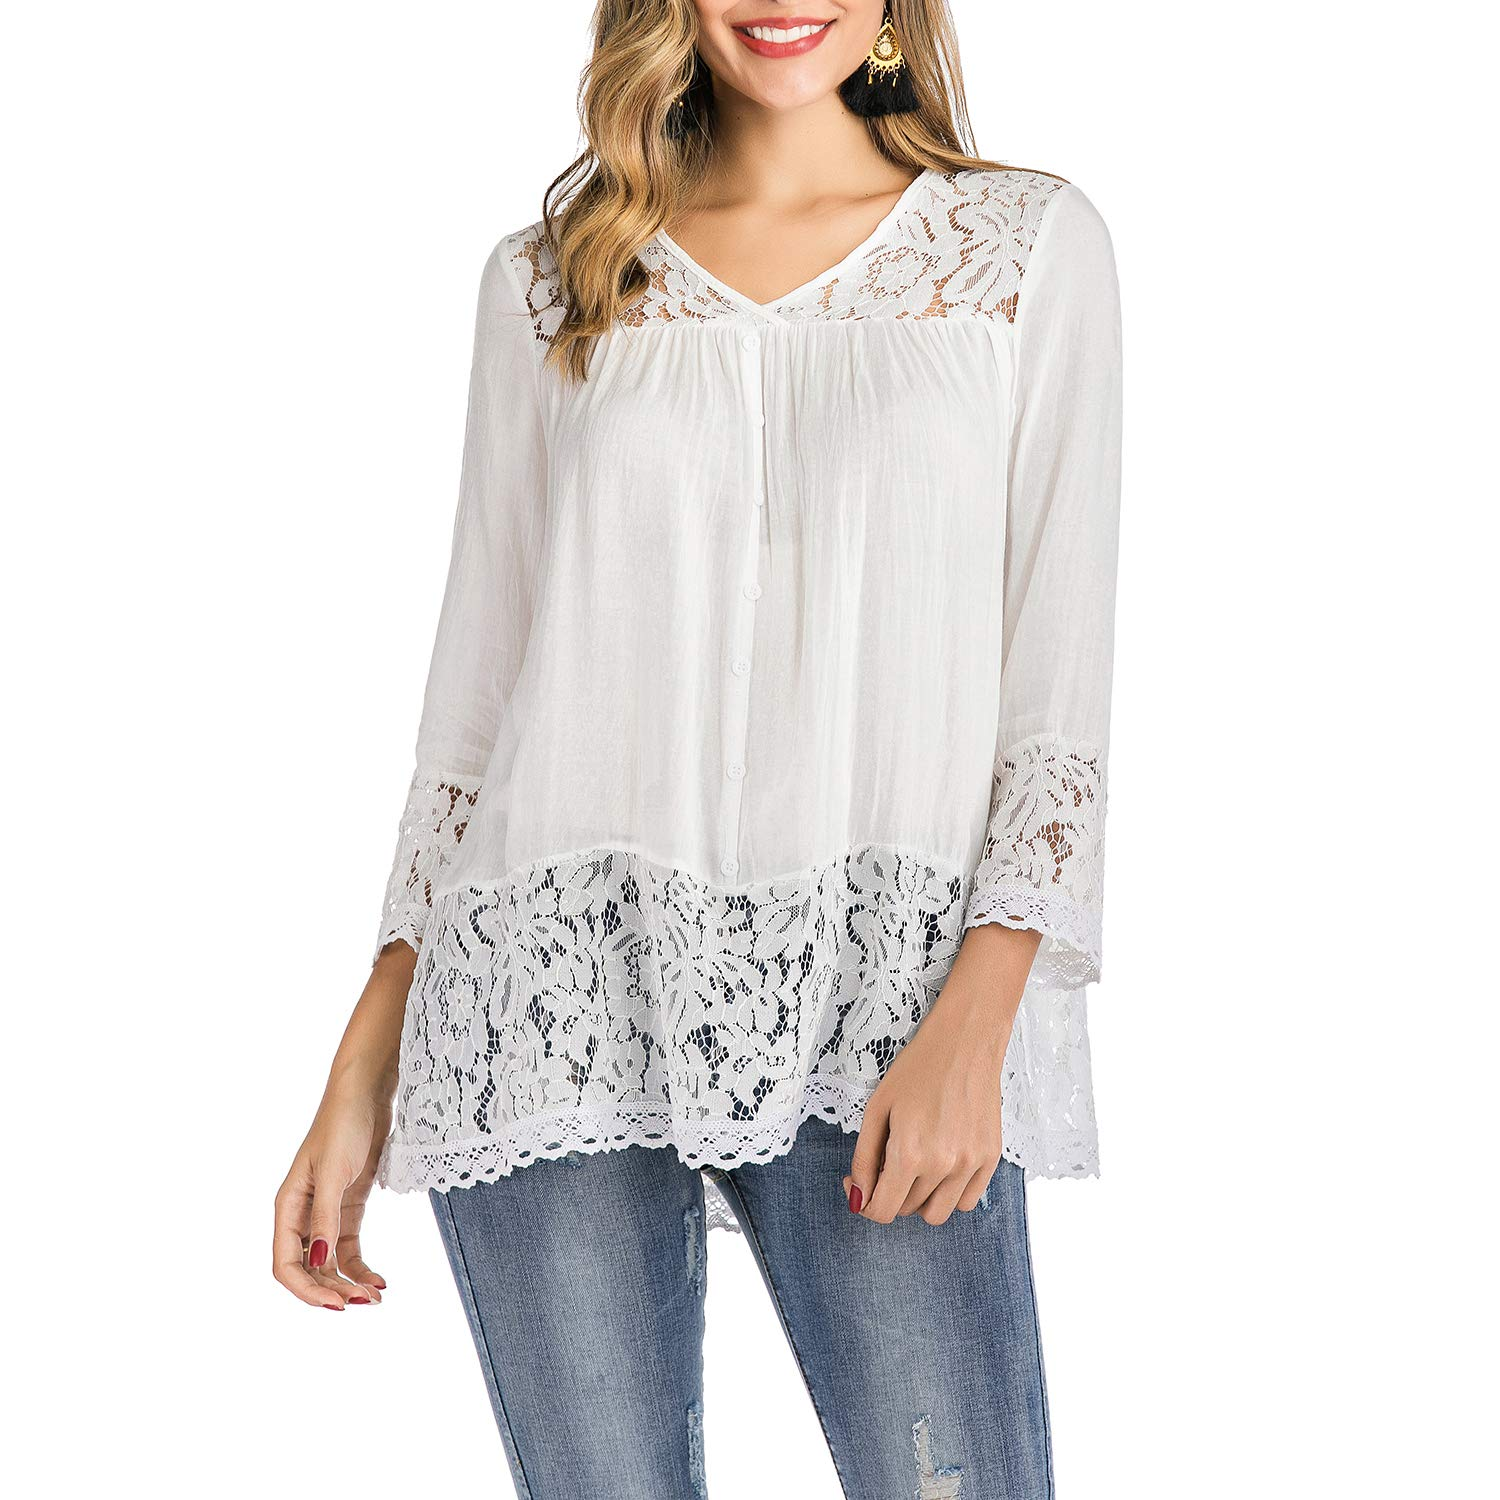 MERMAID'S CLOSET White Tops for Women Long Sleeve Lace Trim V-Neck A-Line Floral Pattern Tunic Blouse Tops Elastic Soft Comfortable White S